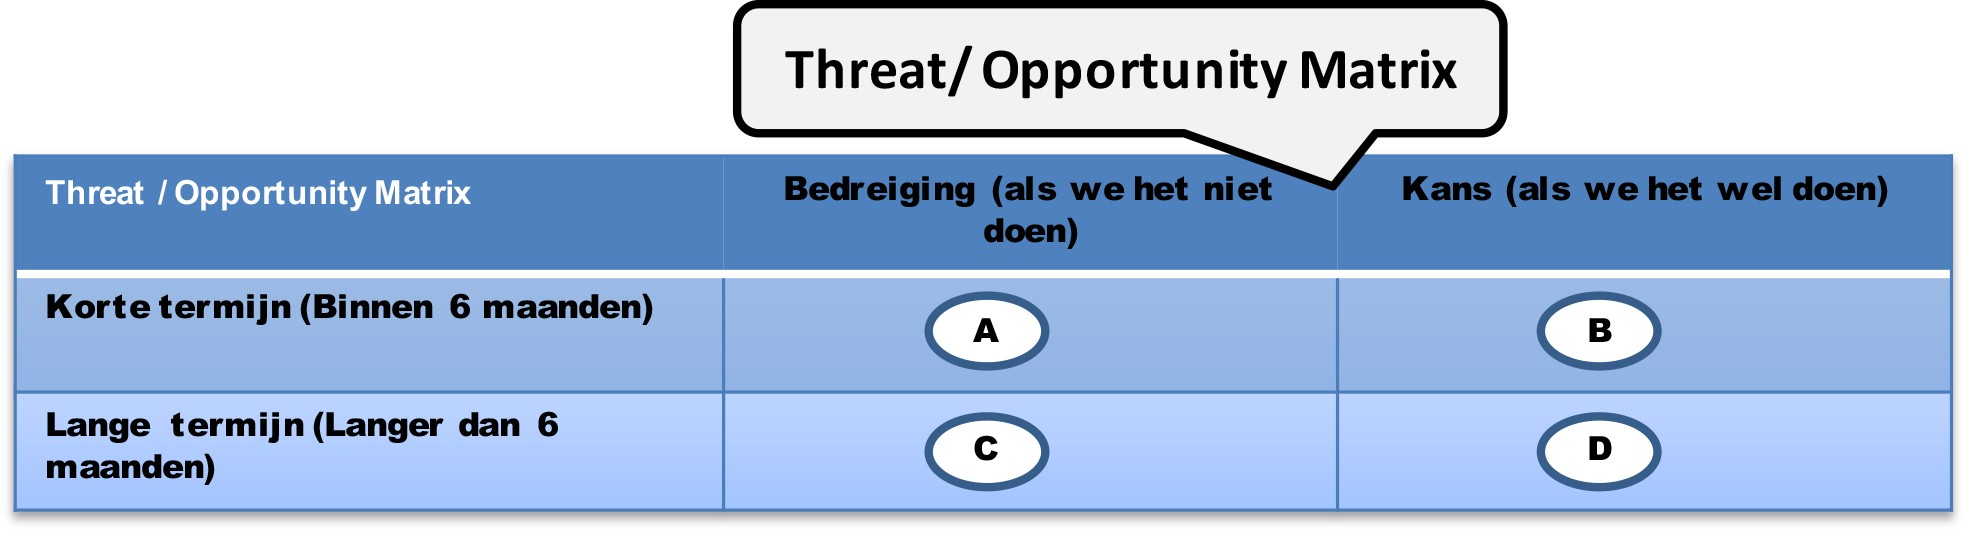 CAP model creating shared need Opportunity Matrix.png